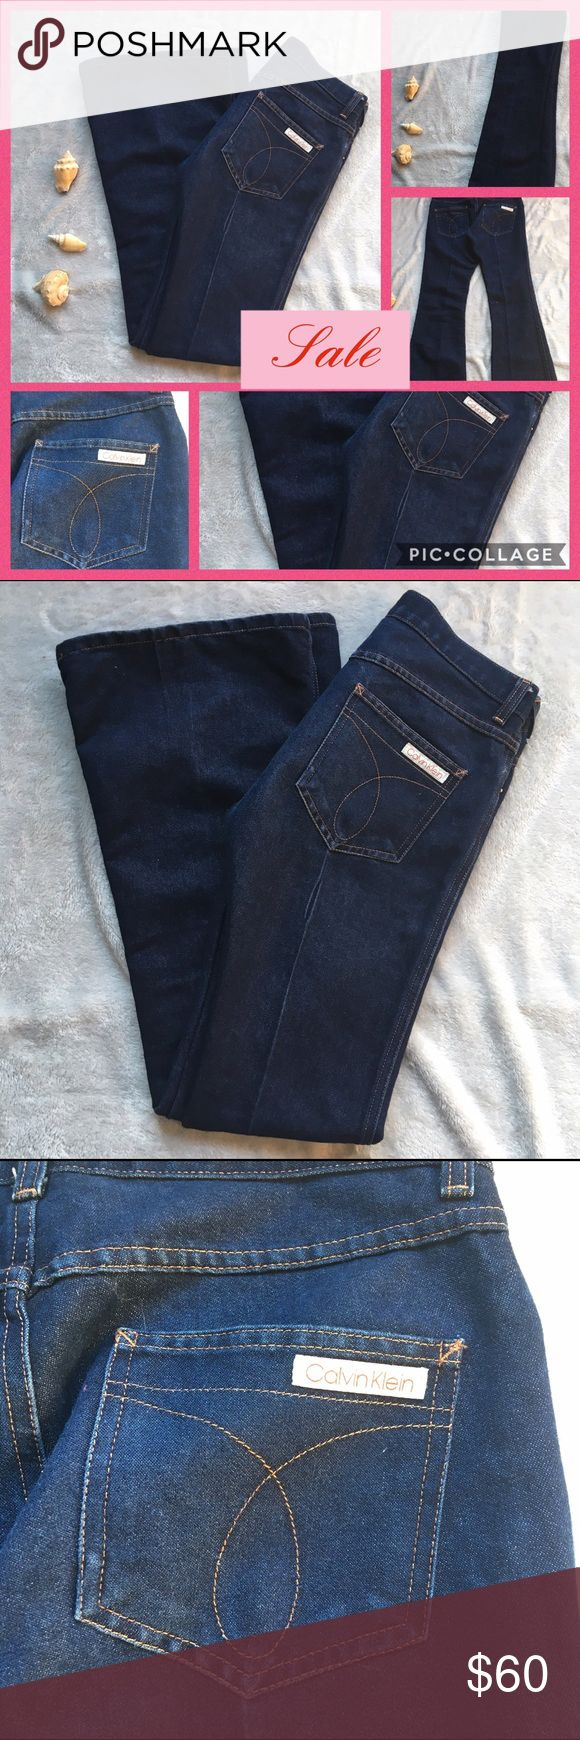 ❤️SALE❤️ CALVIN KLEIN flare women's jeans size 3 Nwot Calvin Klein women's jeans 👖 size 3 references sleep omega extreme flare inseam 33 ❤️makes me an offer ❤️I offer bundle discounts ❤️i send same day of confirmed payments 🔝❤️💯quality☺️🔝🙌happy pu Calvin Klein Jeans Flare & Wide Leg